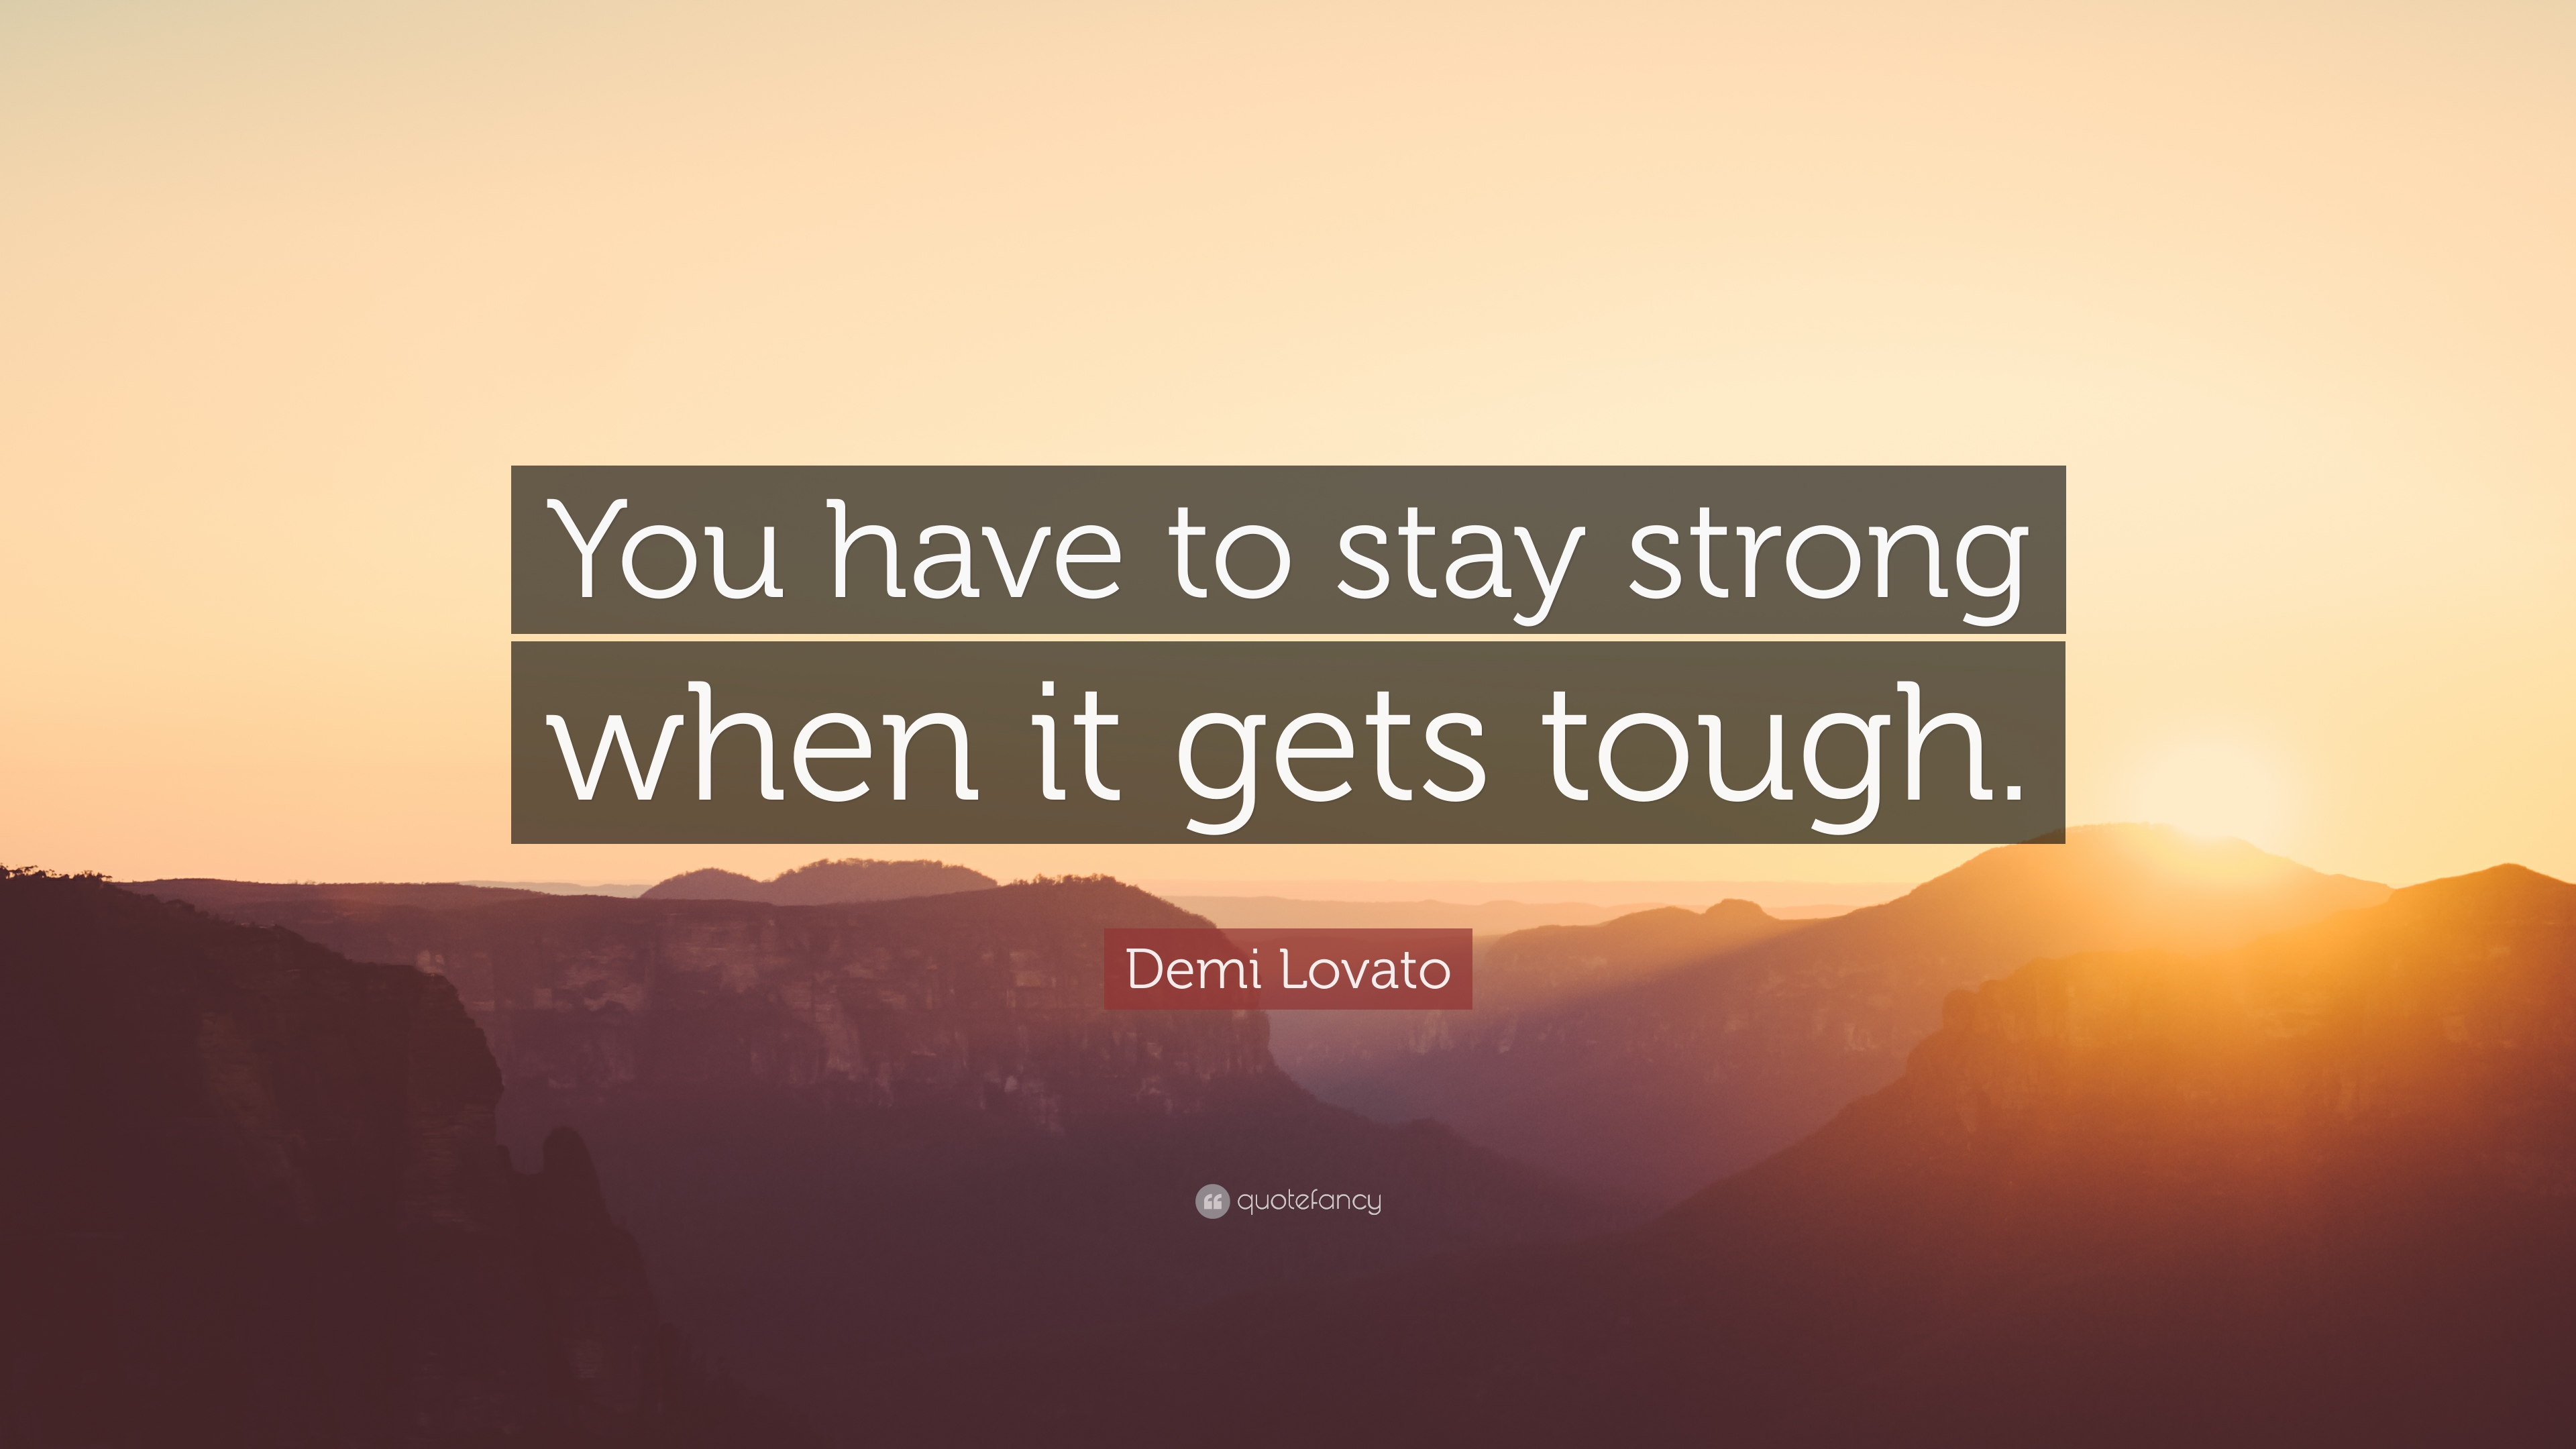 Demi lovato quote you have to stay strong when it gets tough demi lovato quote you have to stay strong when it gets tough voltagebd Images